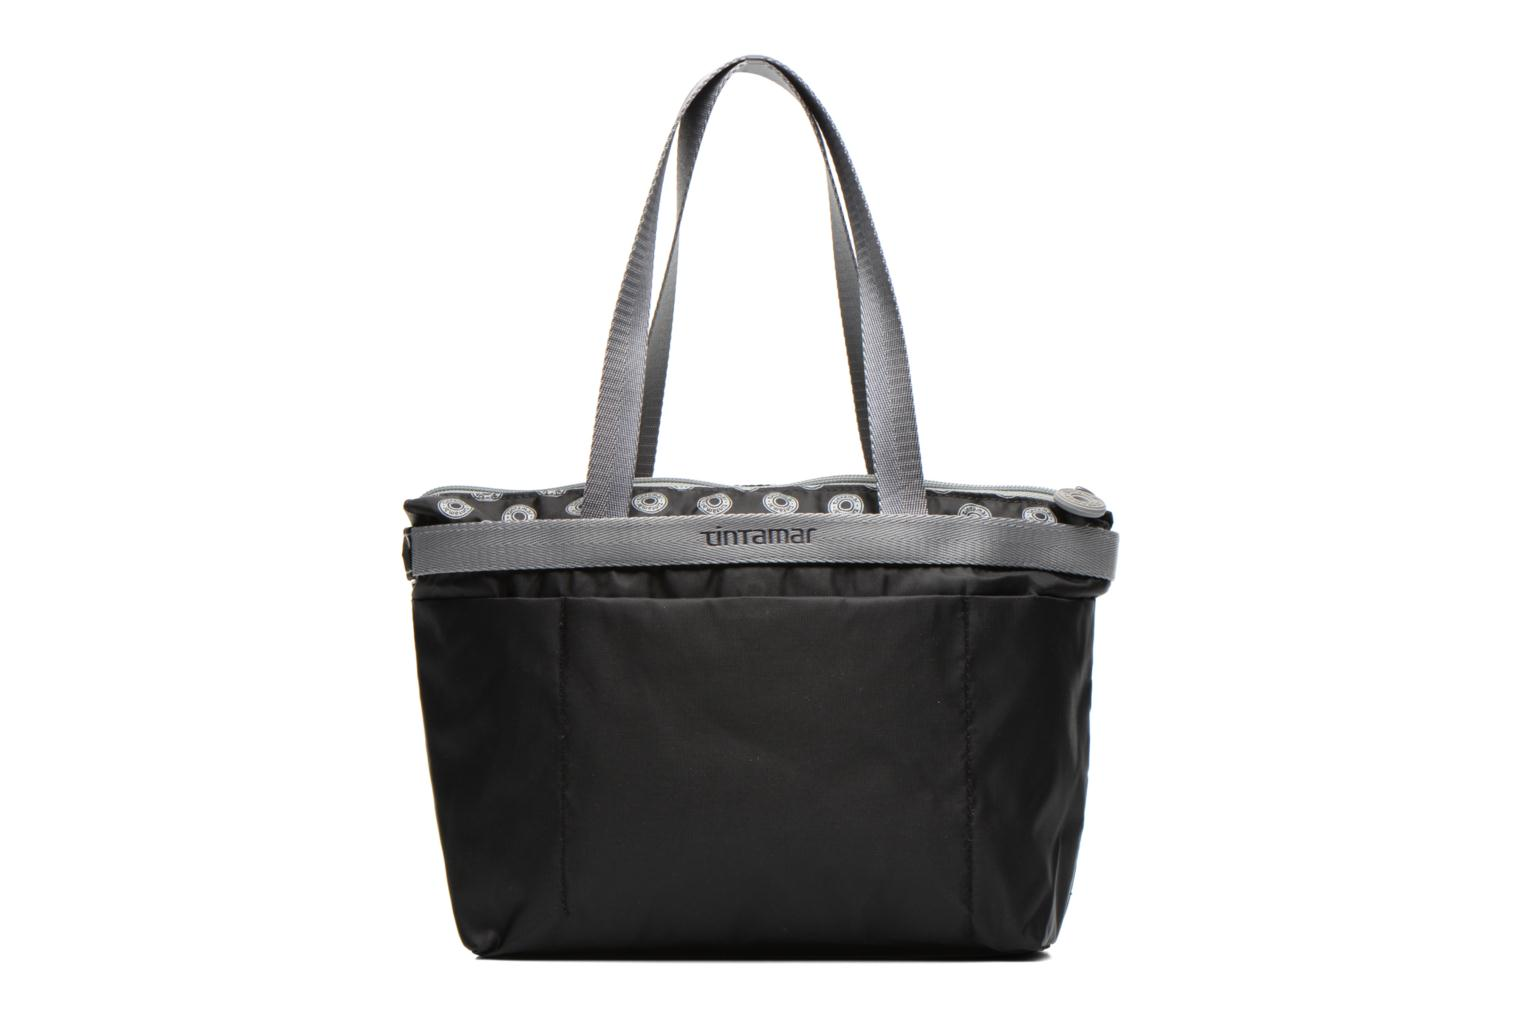 In & out Bag Organizer Black/silver